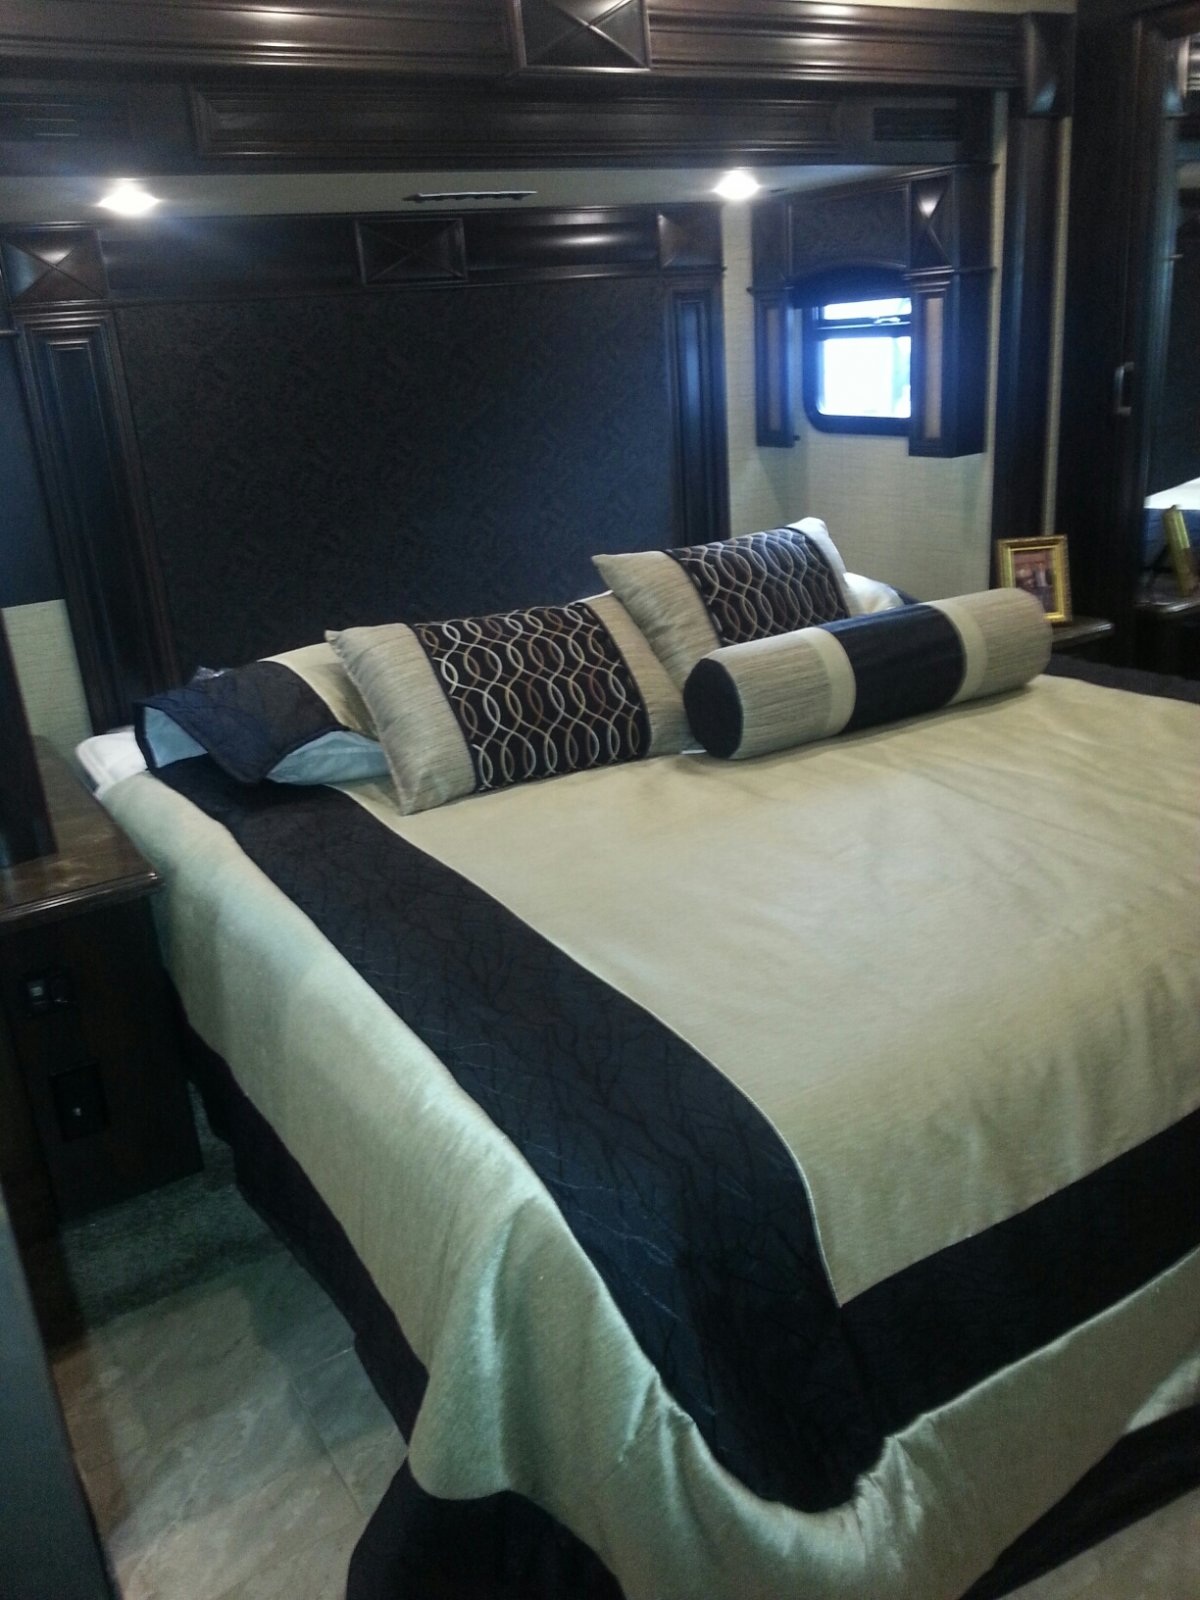 Click image for larger version  Name:2015 American Coach Revolution 39A - Bed.jpg Views:120 Size:238.1 KB ID:73867